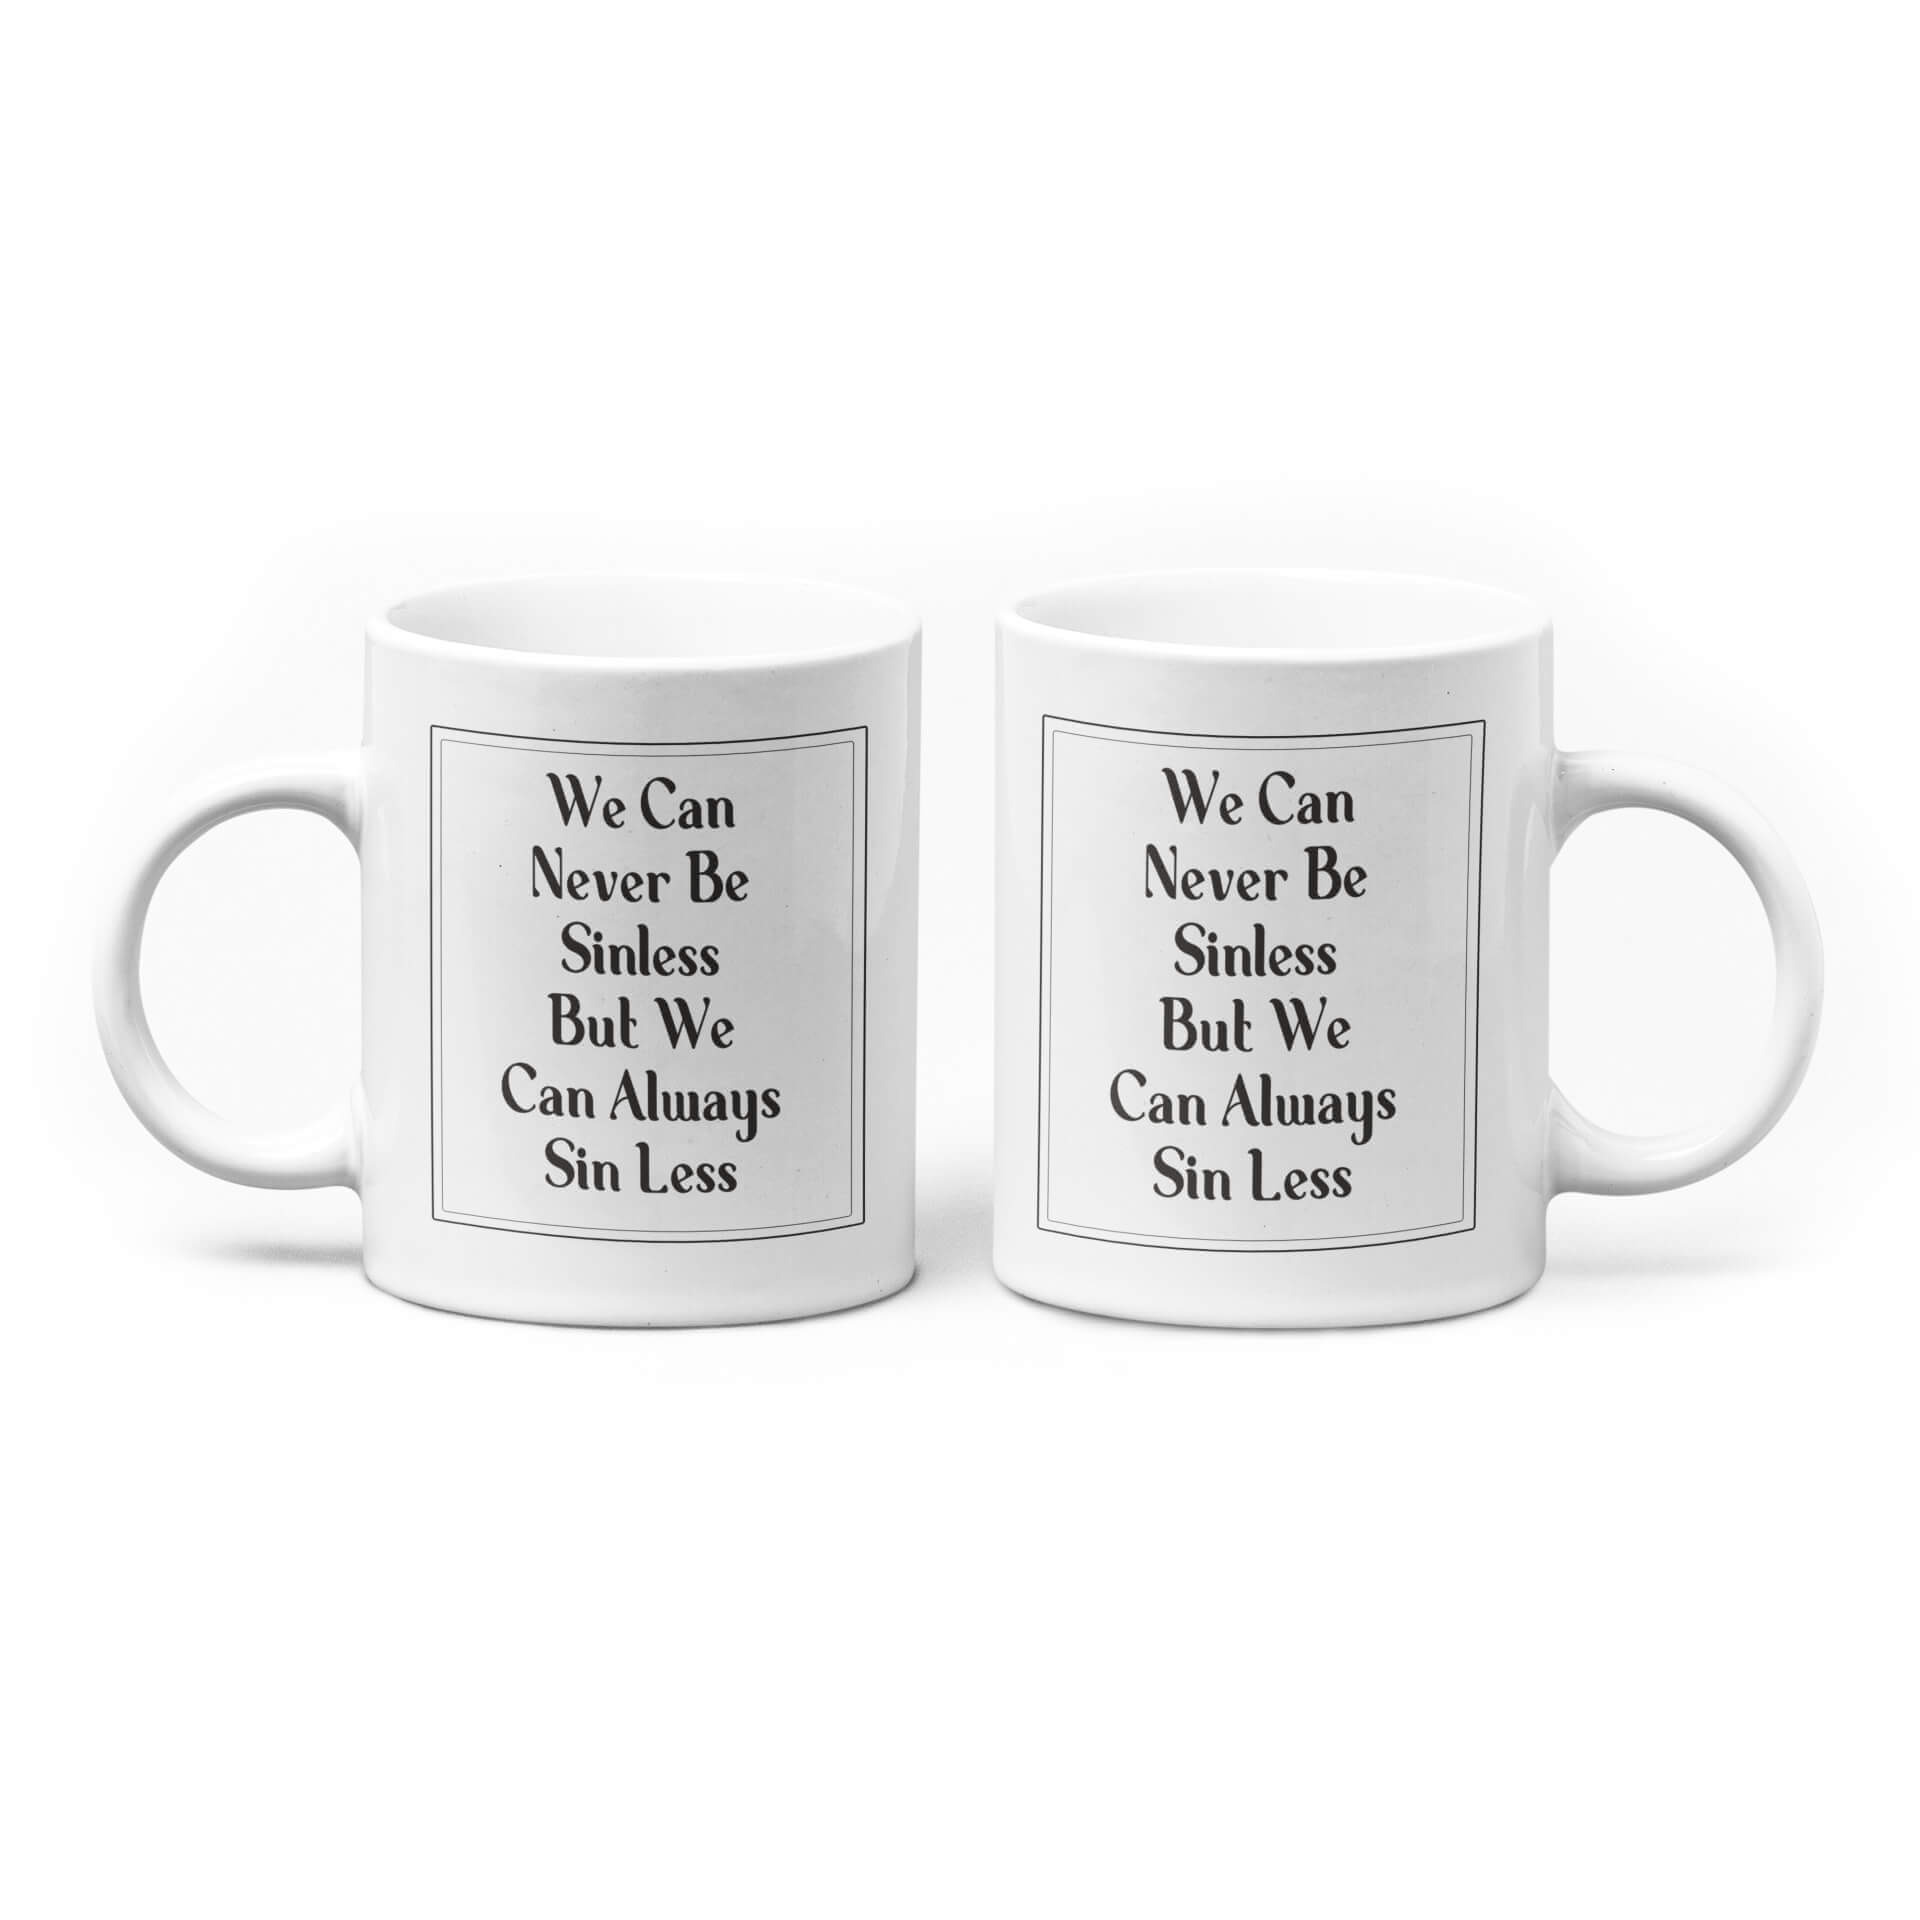 We Can Never Be Sinless But We Can Always Sin Less Mug